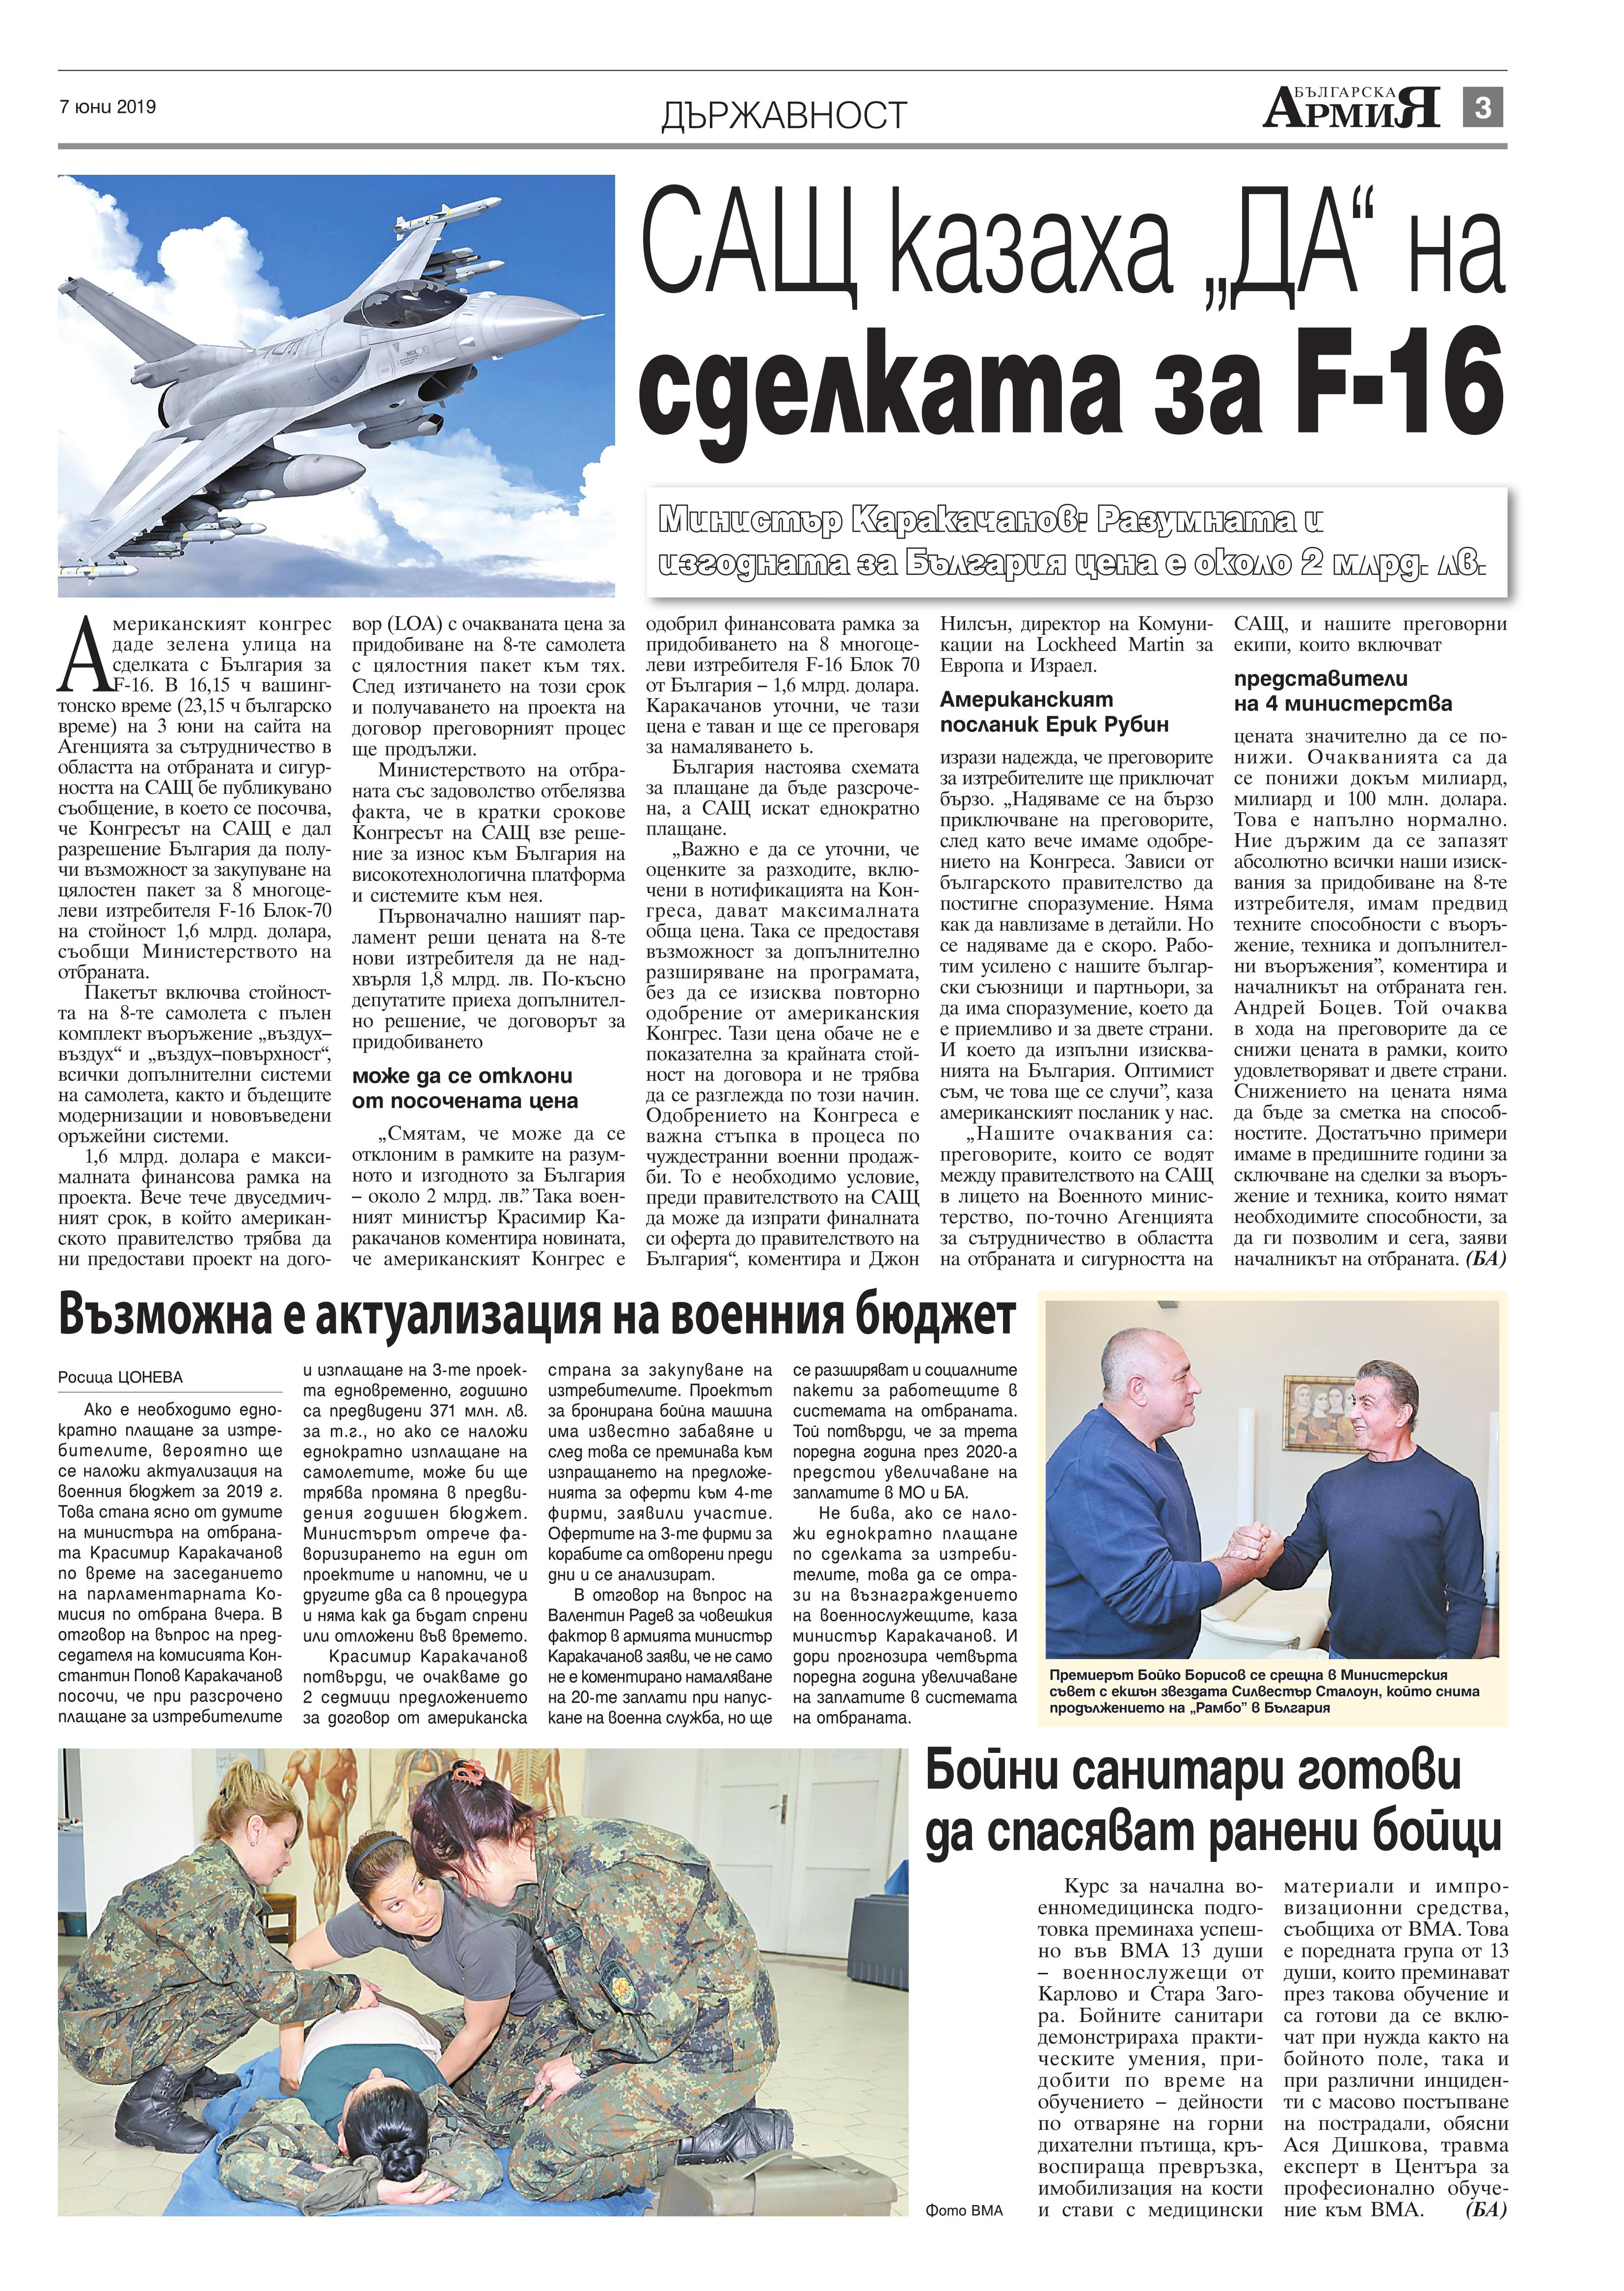 https://armymedia.bg/wp-content/uploads/2015/06/03.page1_-95.jpg